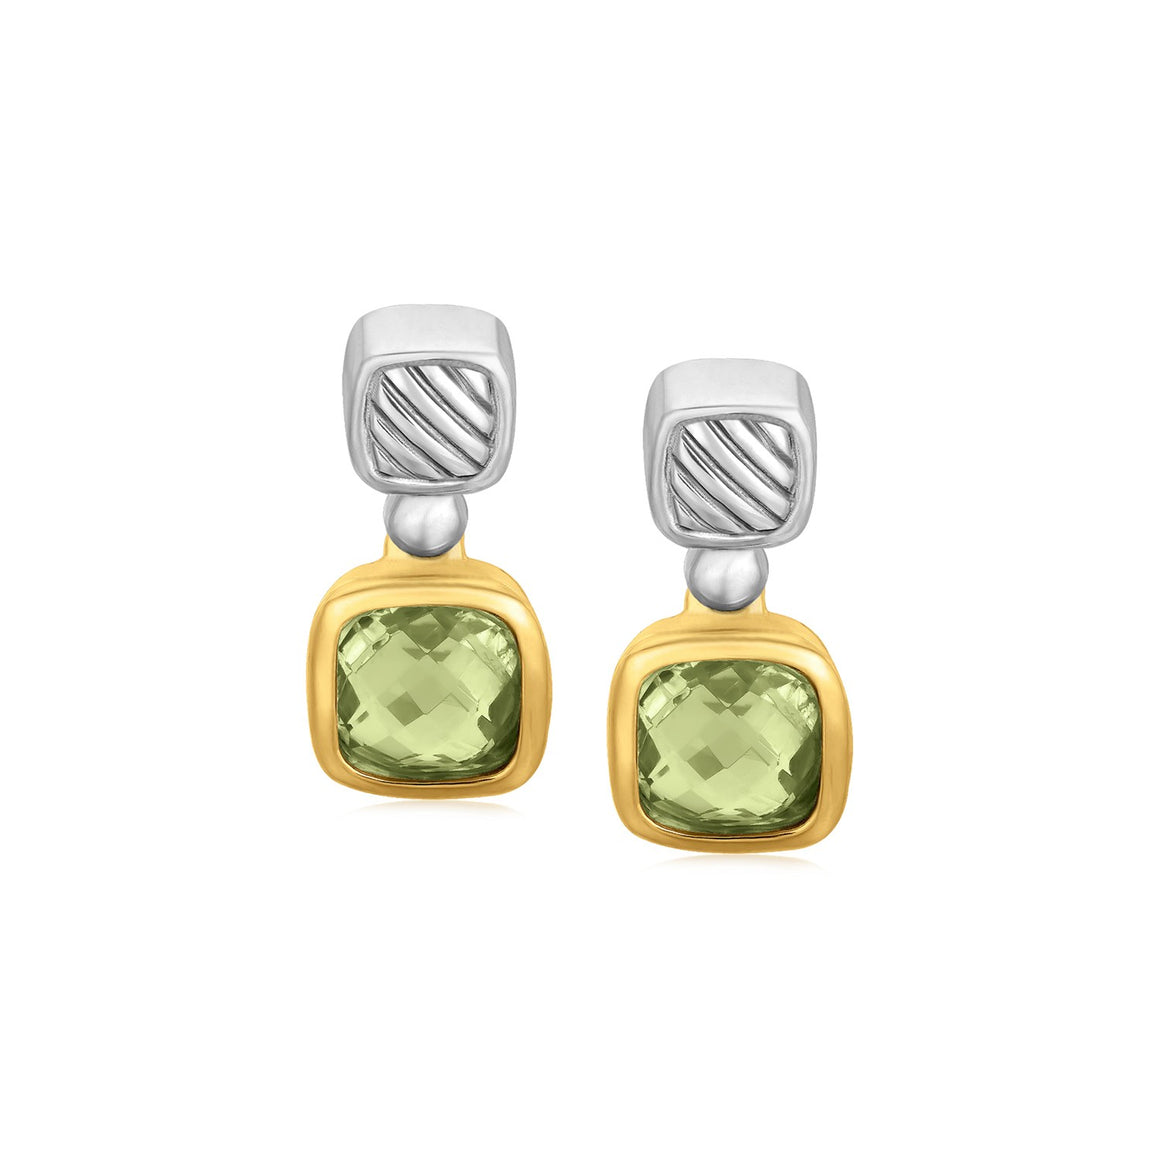 18k Yellow Gold and Sterling Silver Drop Earrings with Bezel Set Green Amethysts